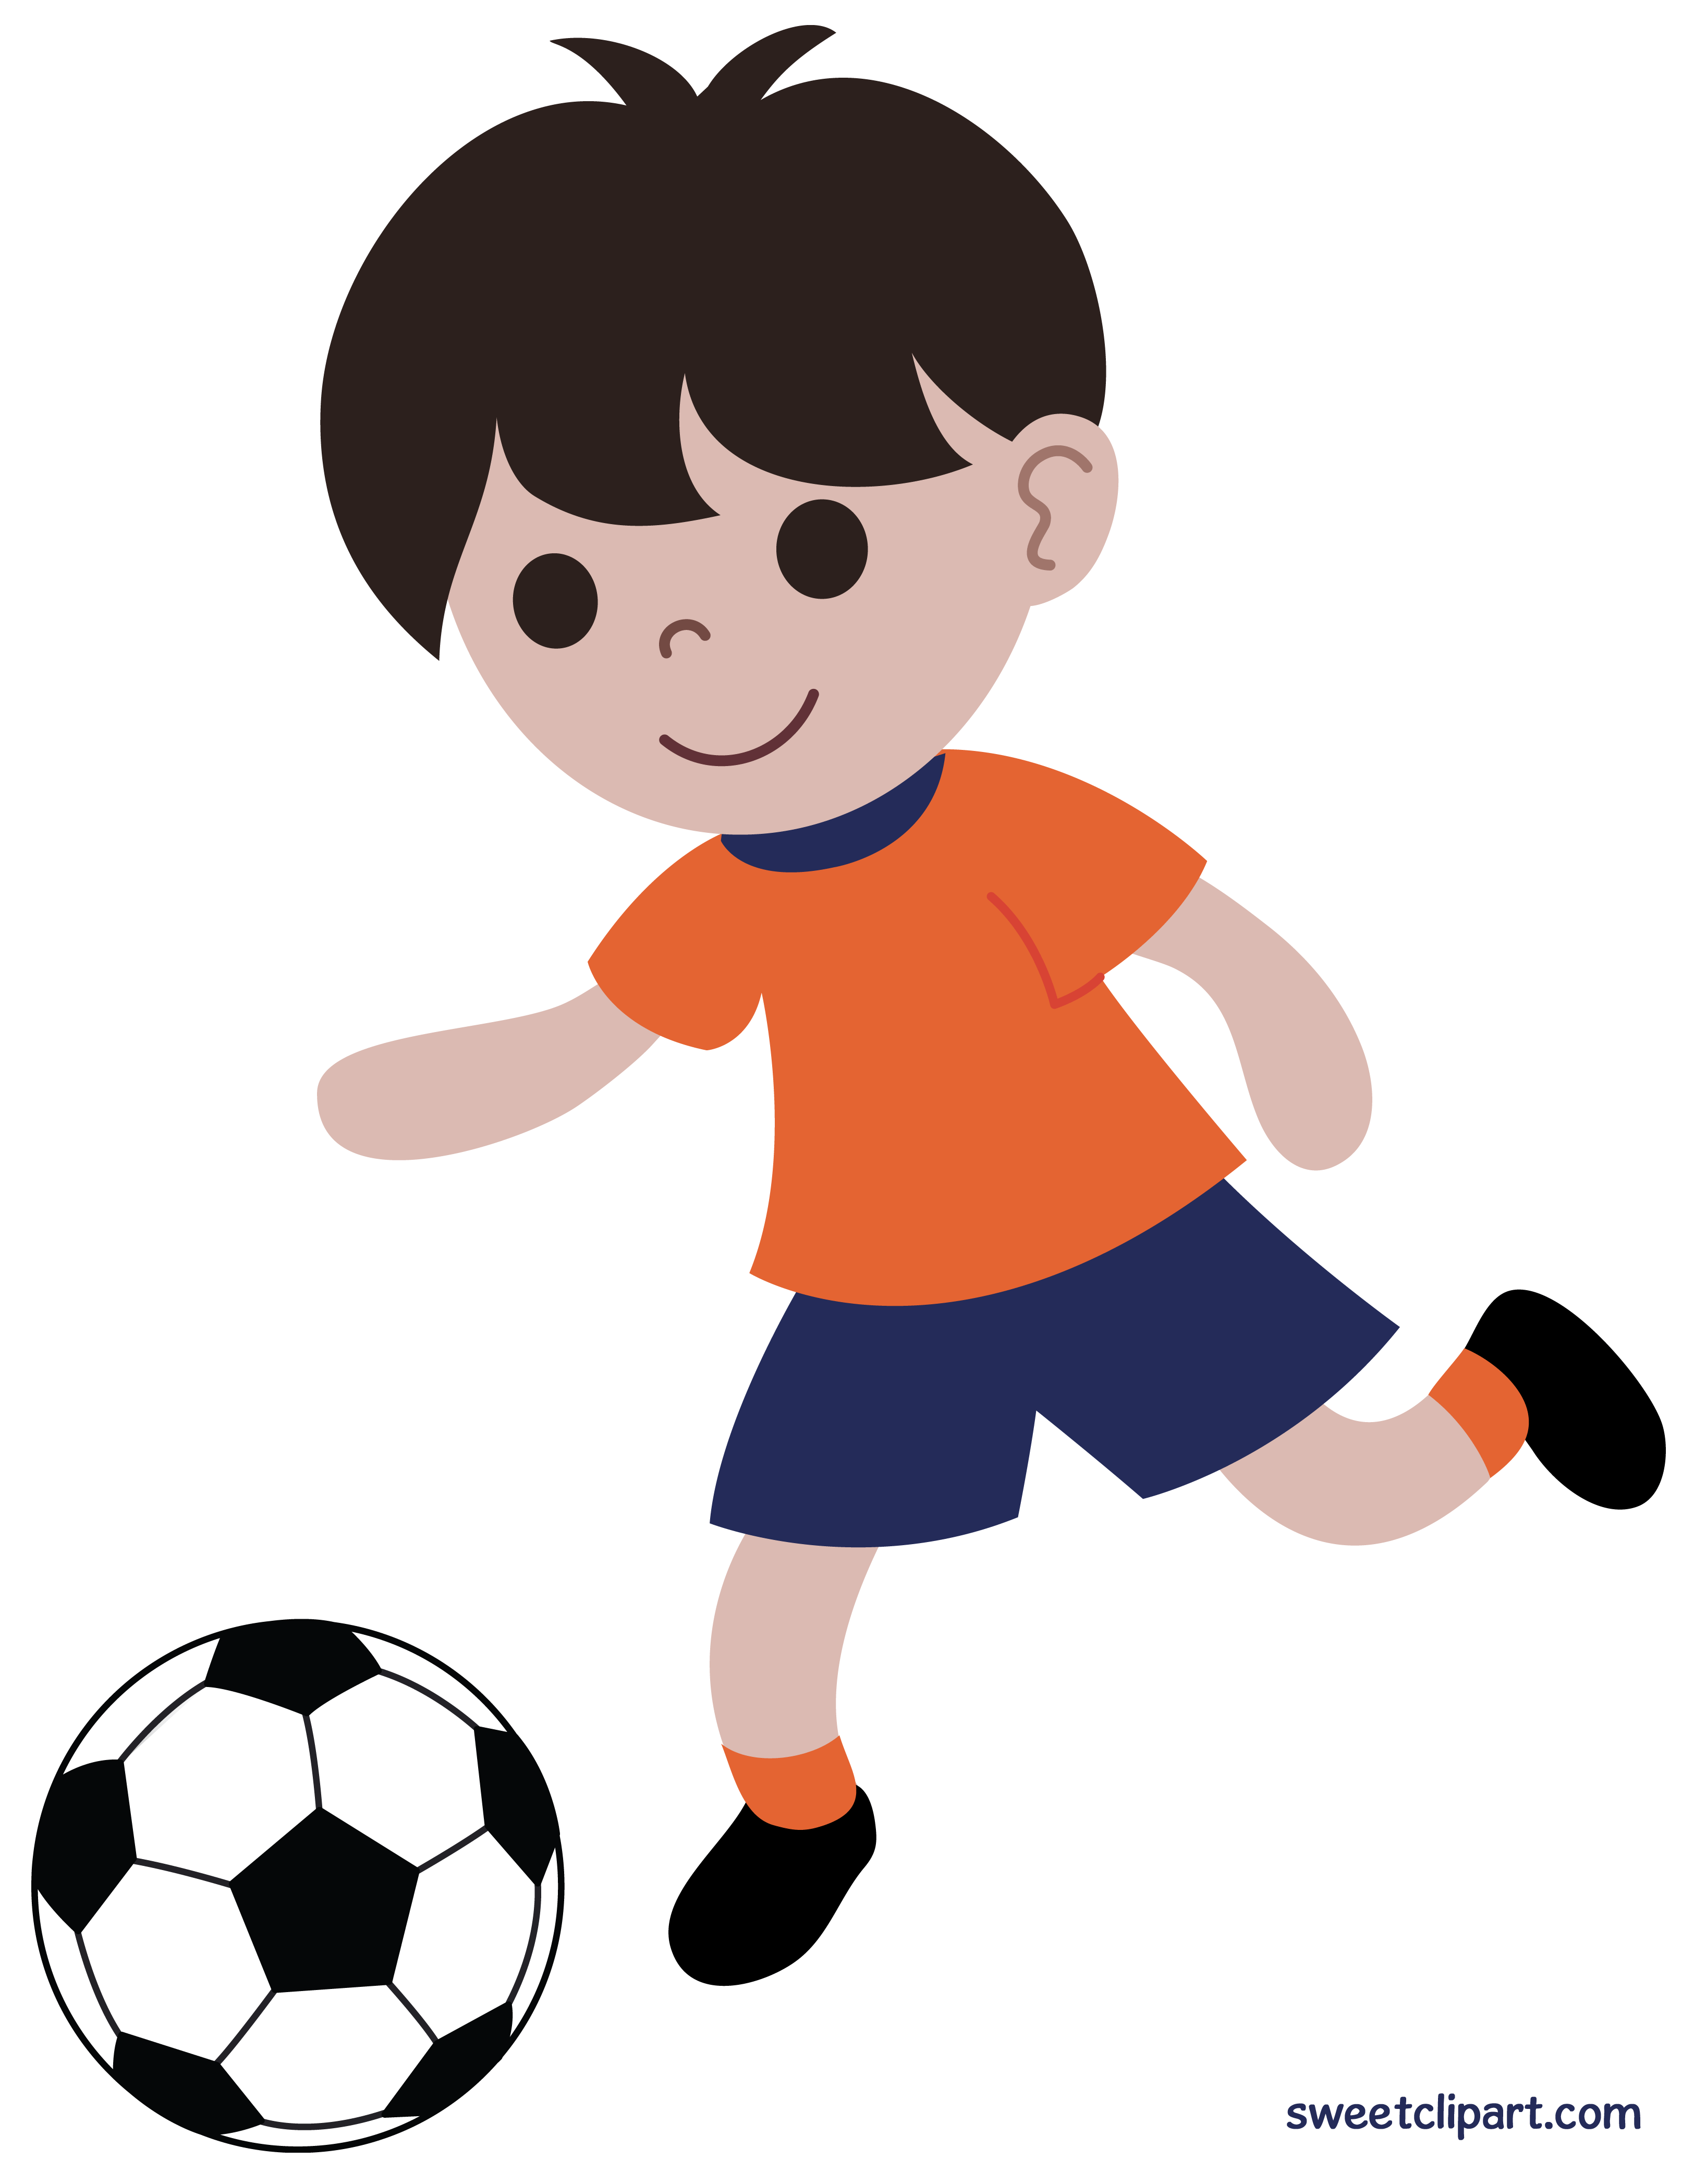 Soccer player pictures clipart picture royalty free stock Boy soccer player clipart 2 » Clipart Portal picture royalty free stock